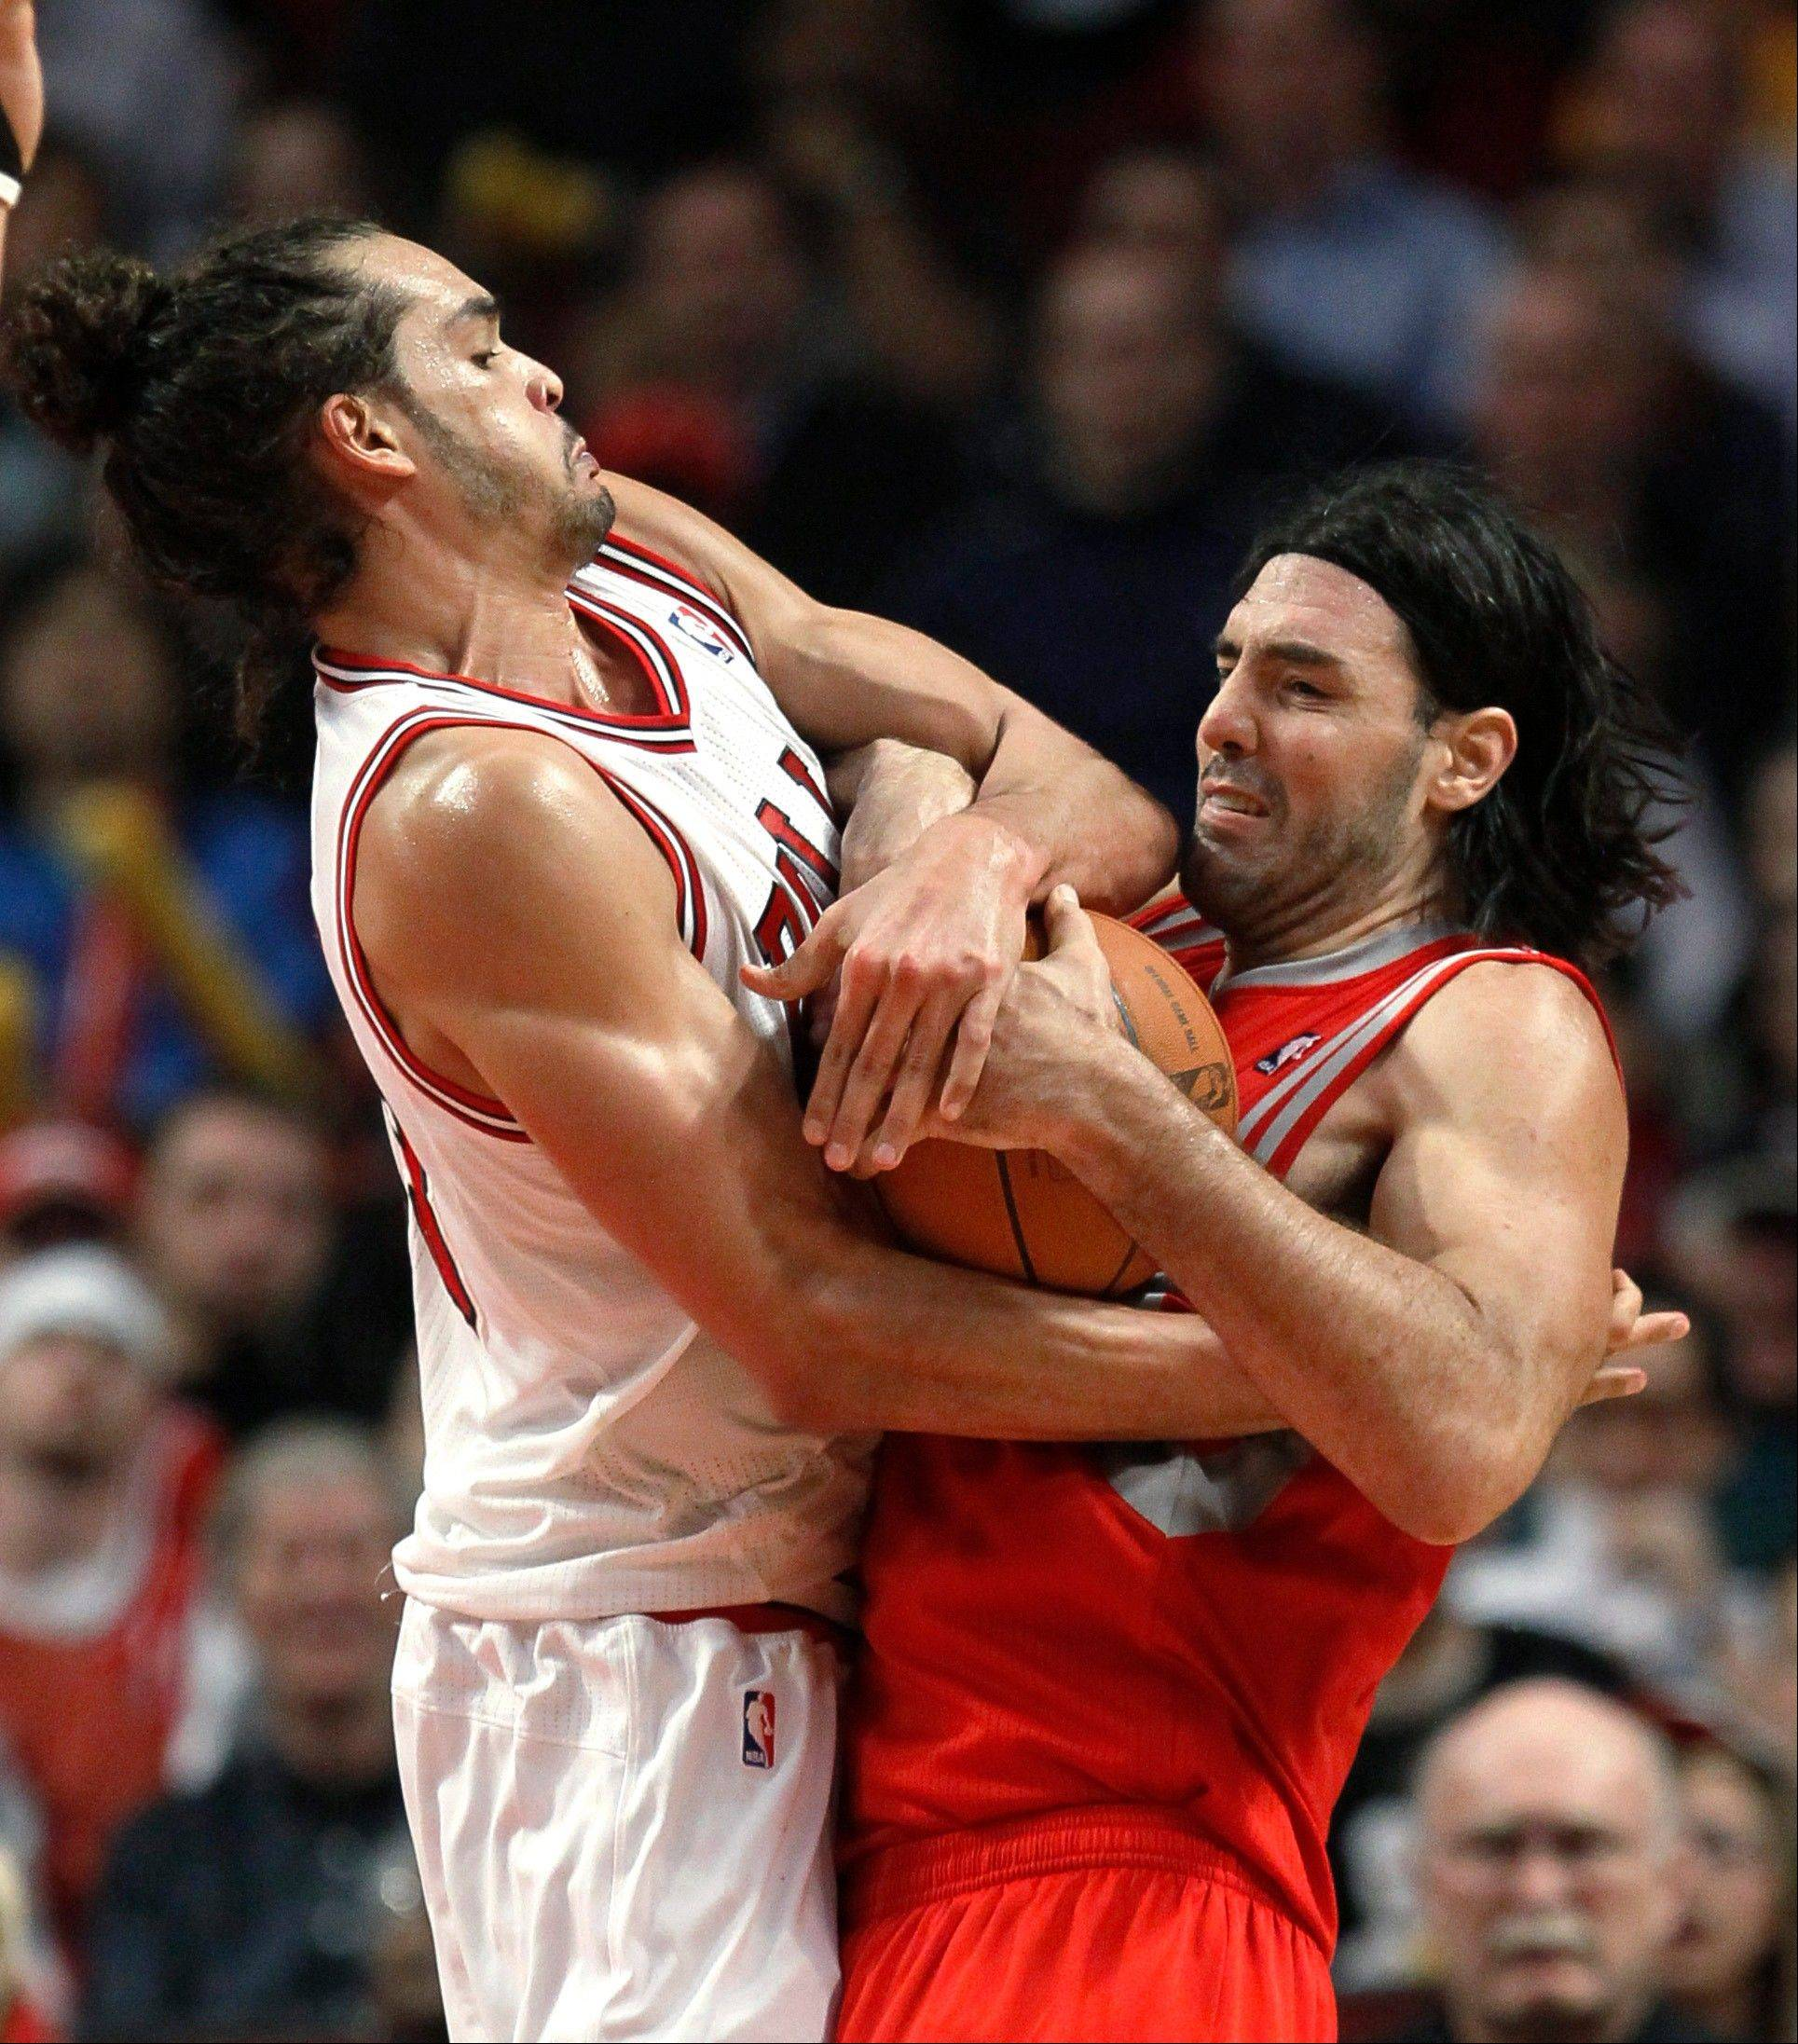 Chicago Bulls center Joakim Noah, left, ties up Houston Rockets forward Luis Scola, resulting in a jump ball, during the second half of an NBA basketball game Monday, April 2, 2012, in Chicago. The Rockets won 99-93.